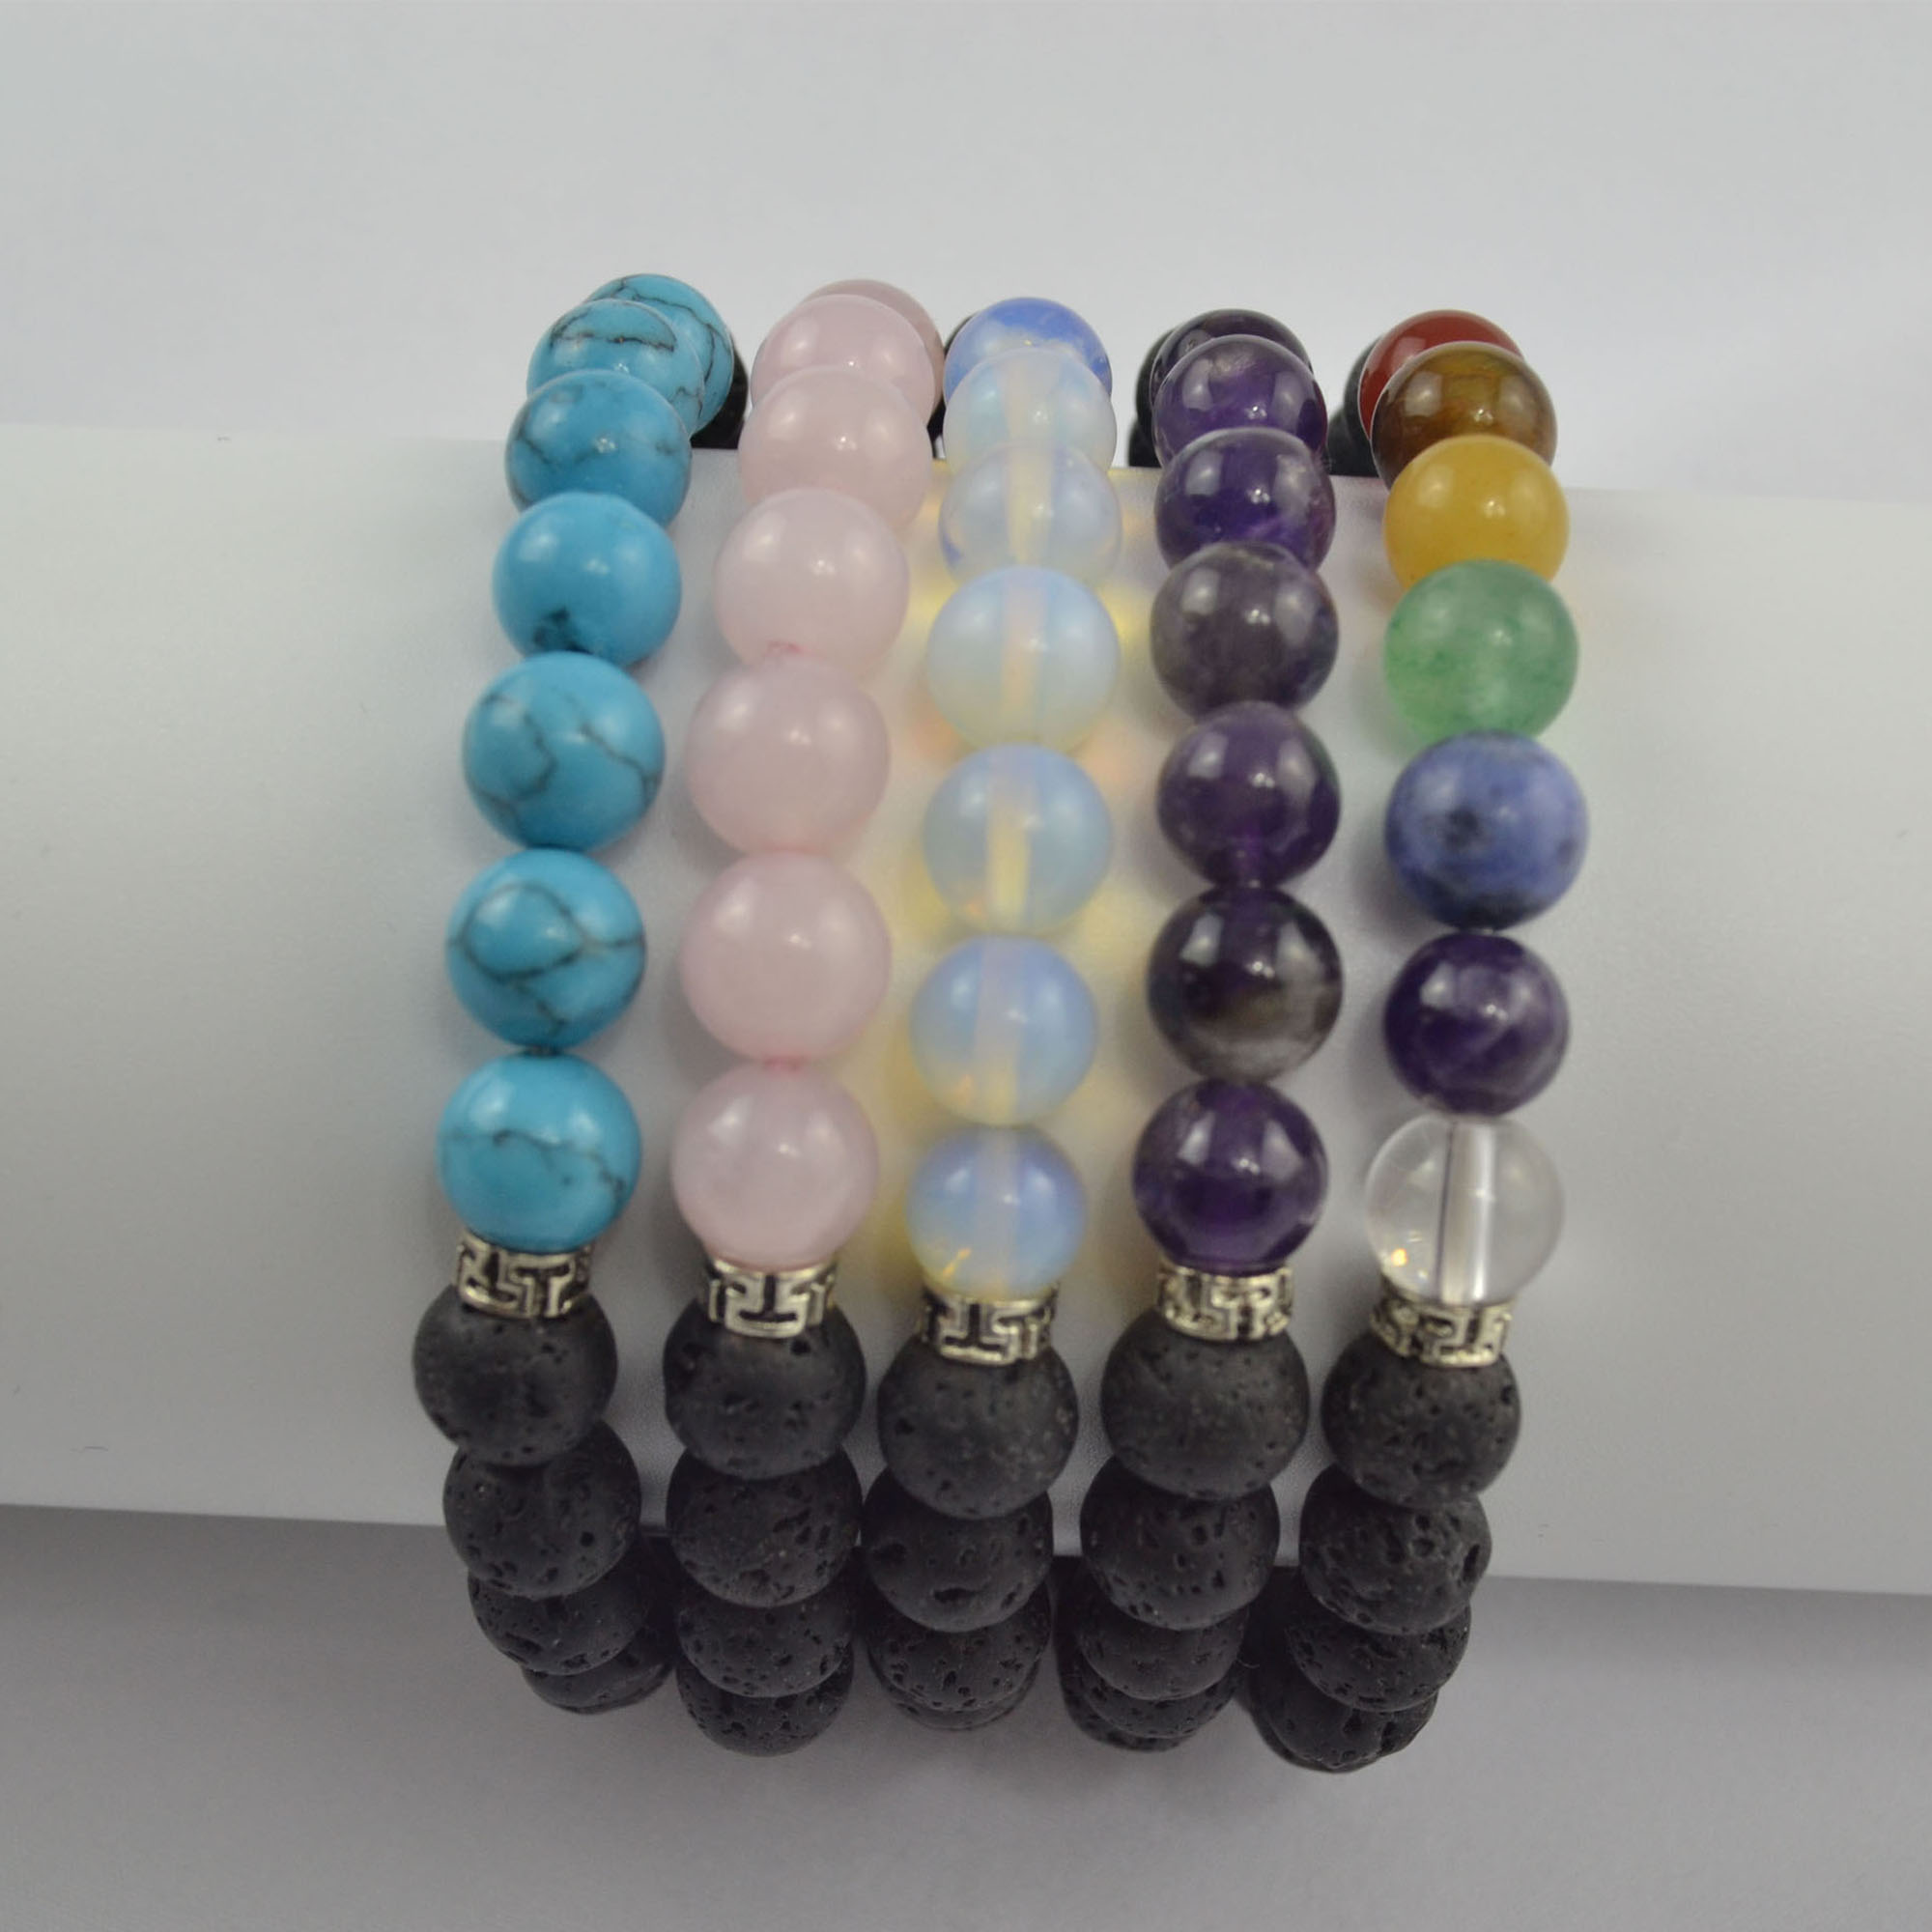 High Quality Semi- Gem Stone Beads - lava bead bracelet lava stone bracelet lava beads with semi-gem stone beads bracelet – Harmony